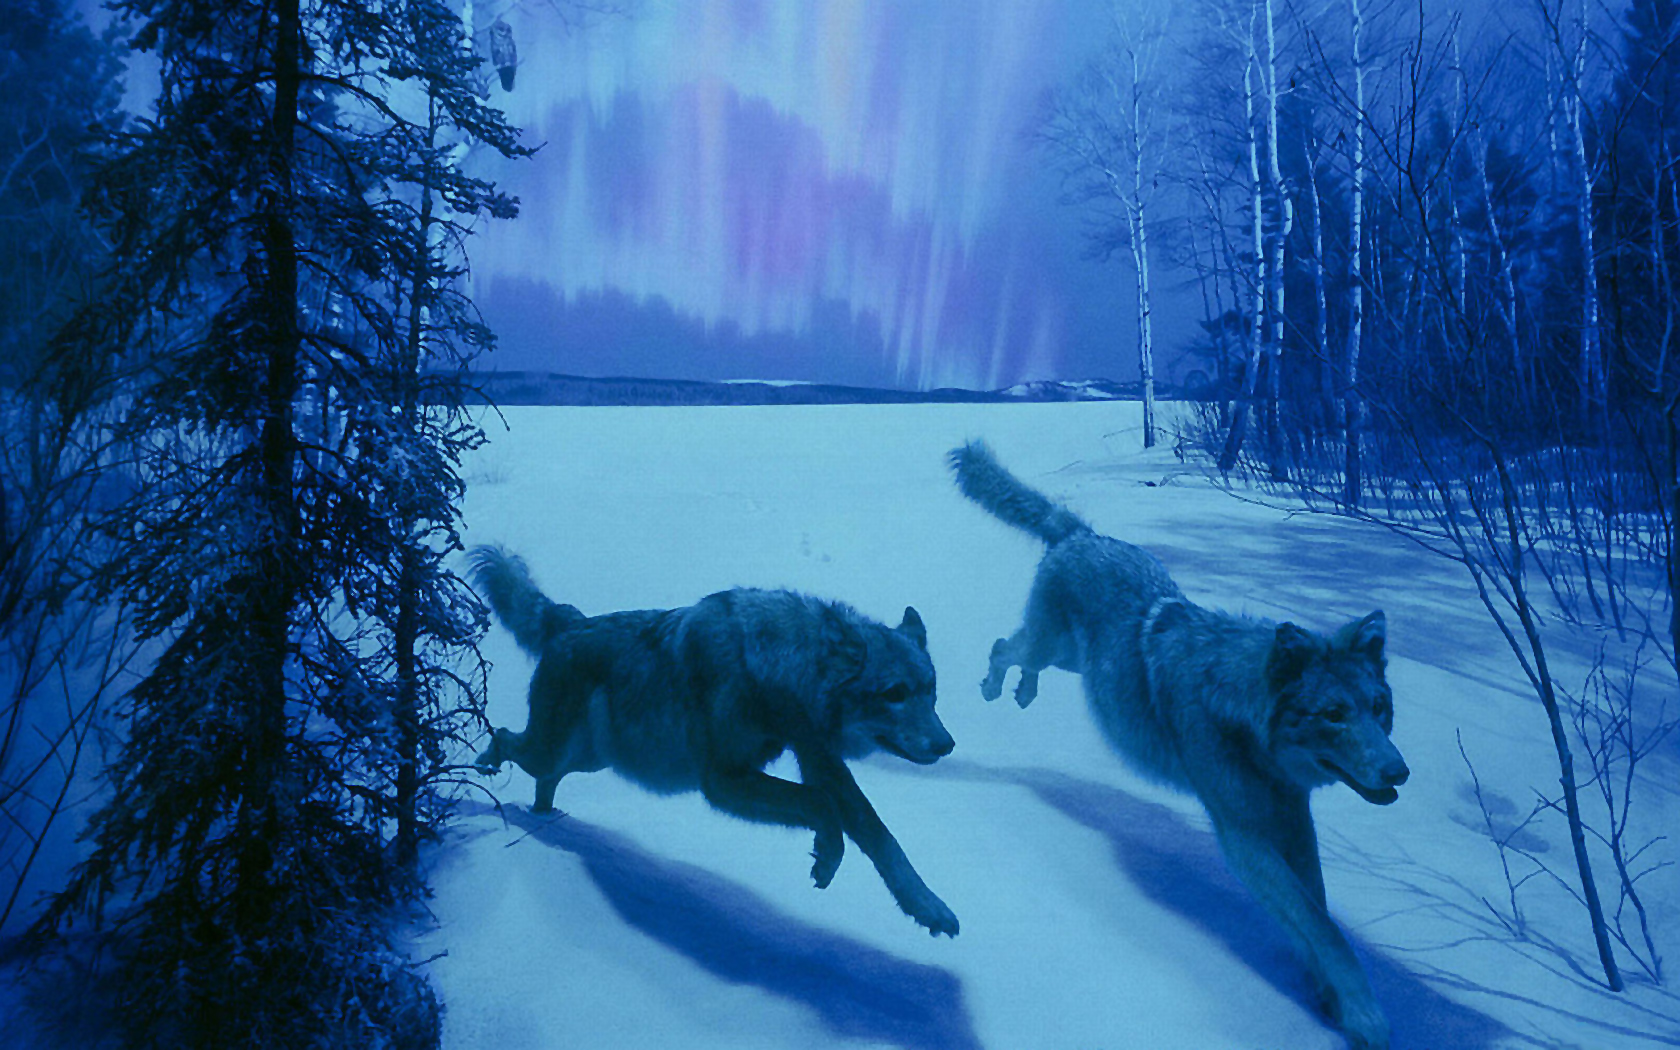 HD Wolf Backgrounds  PixelsTalk Collection of Cool Wolf Backgrounds on HDWallpapers 1680x1050